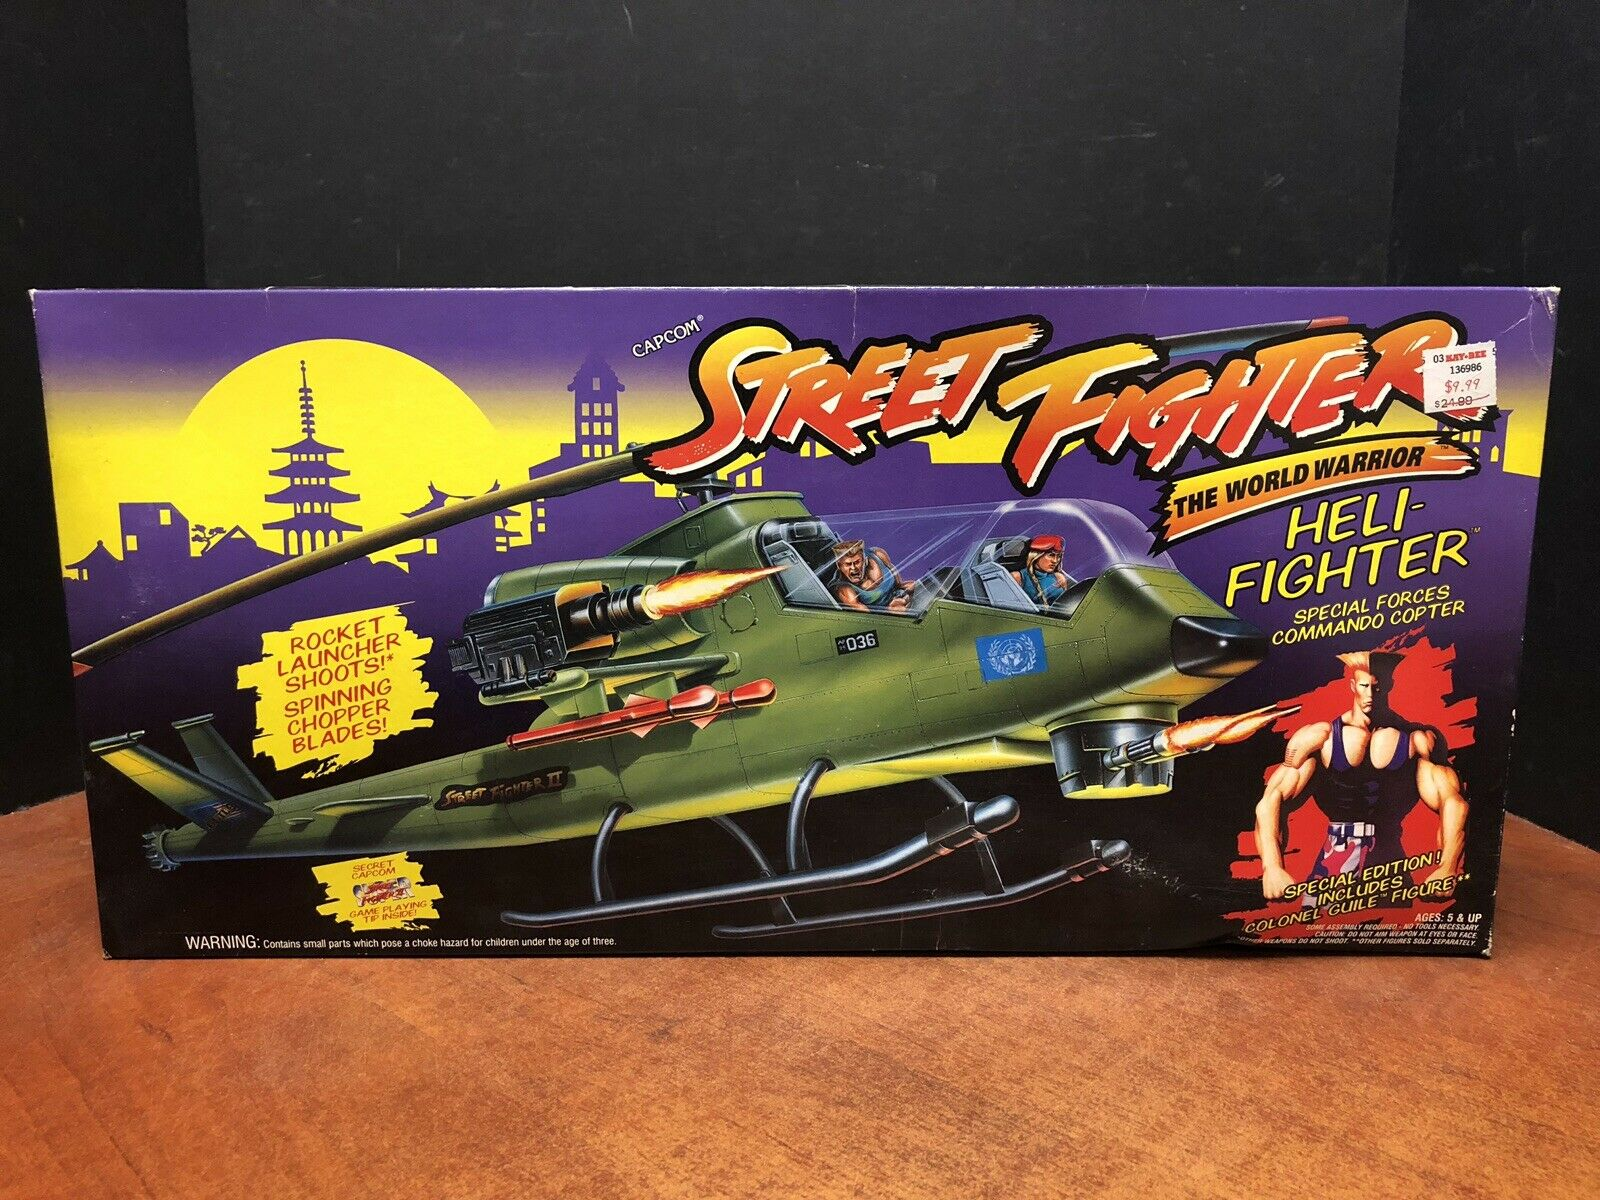 Capcom Street Fighter Heli-Fighter Copter Sealed Dela0615